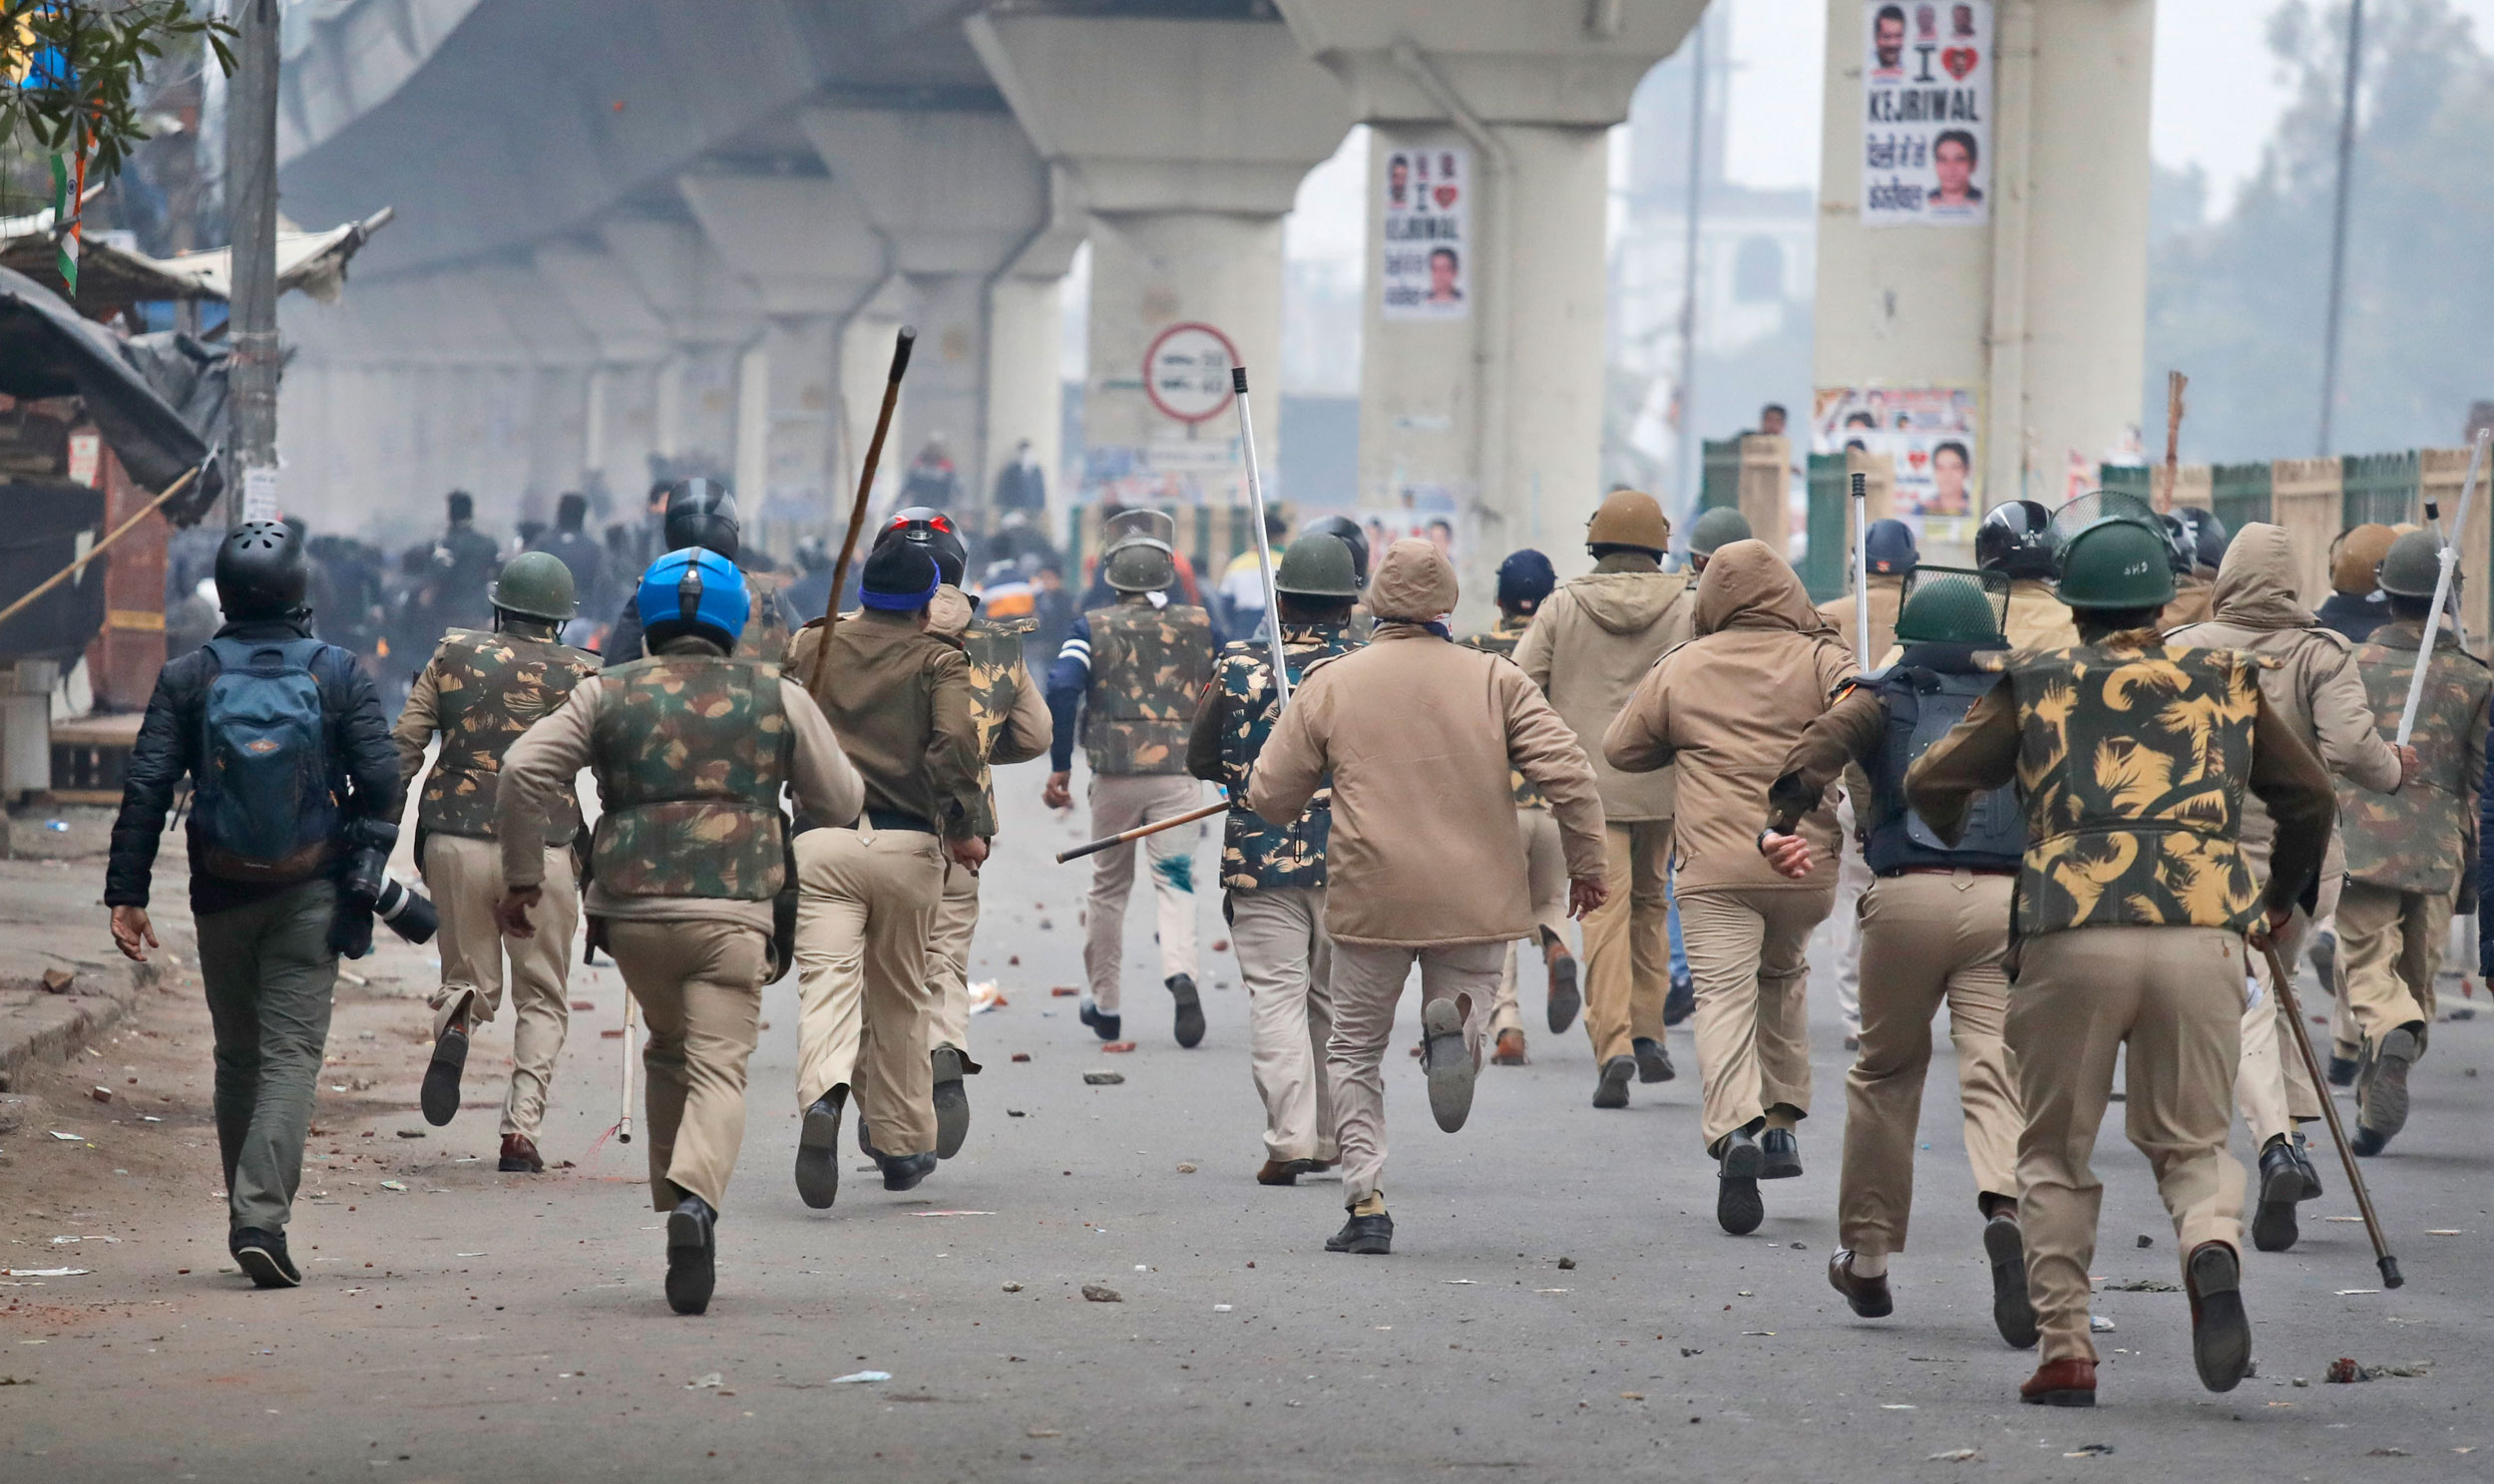 Policemen chase protesters during a protest against the new citizenship law in New Delhi on Tuesday.